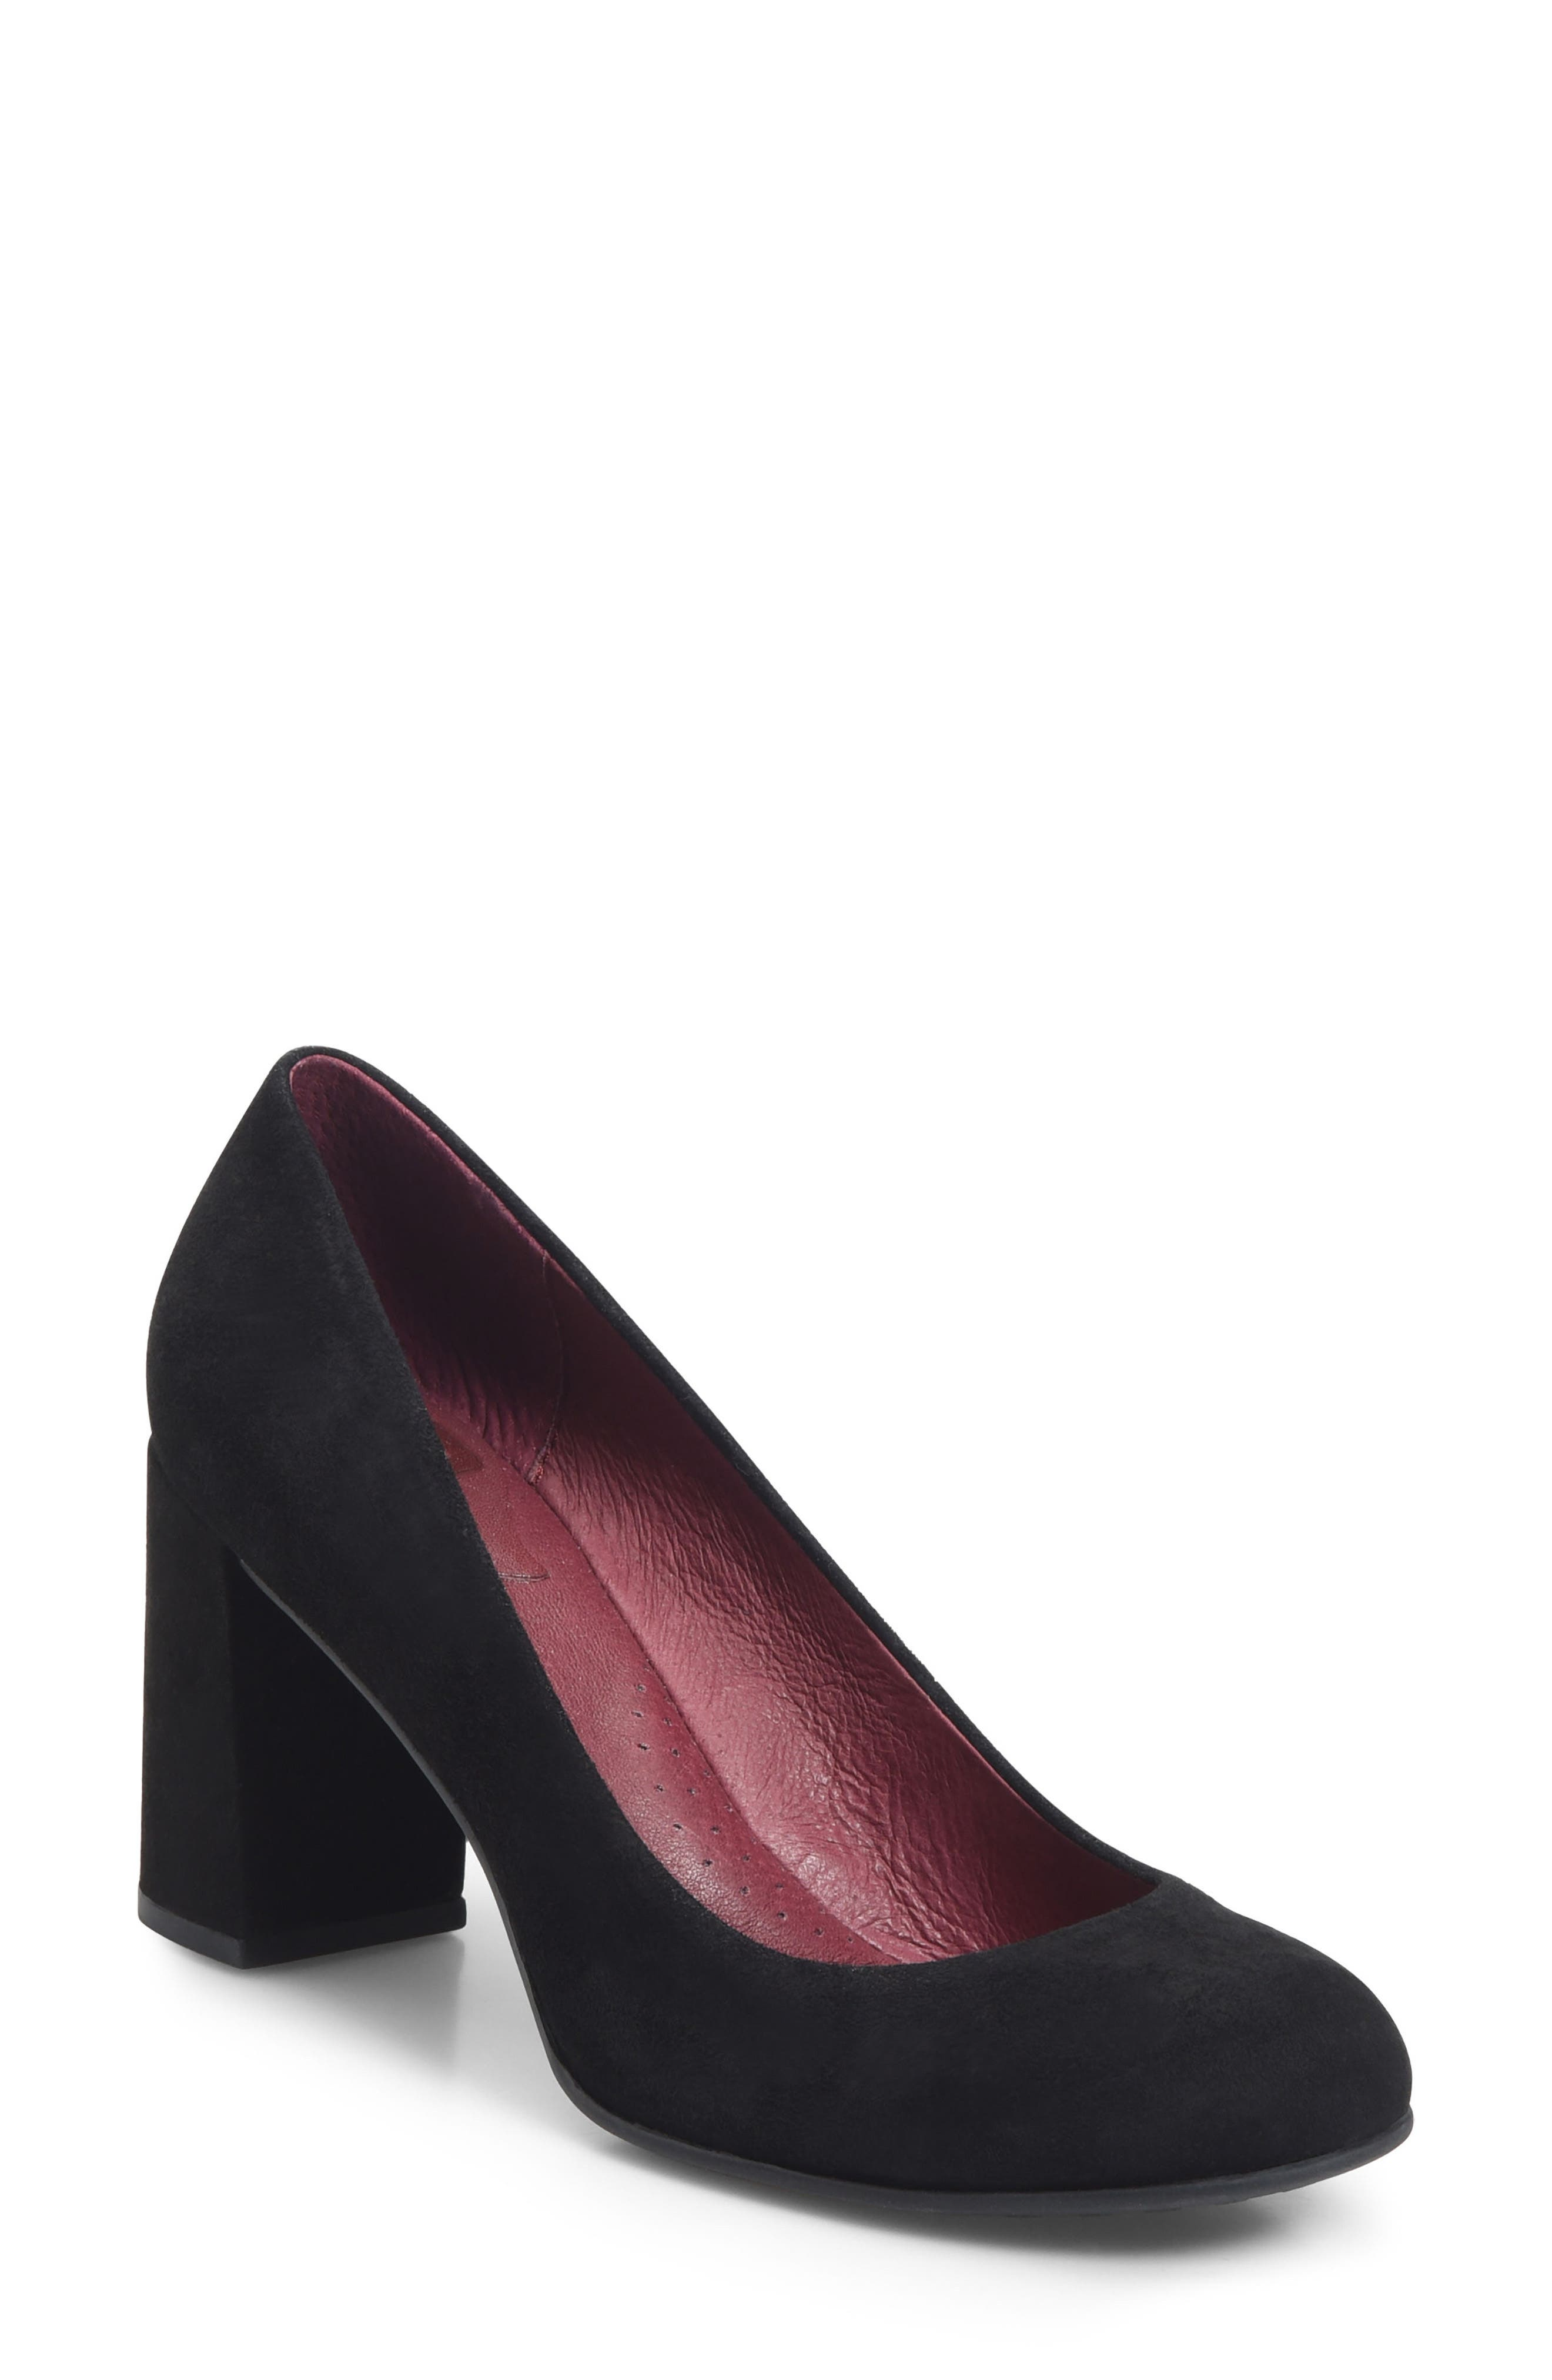 Alpena Block Heel Pump,                             Main thumbnail 1, color,                             BLACK SUEDE